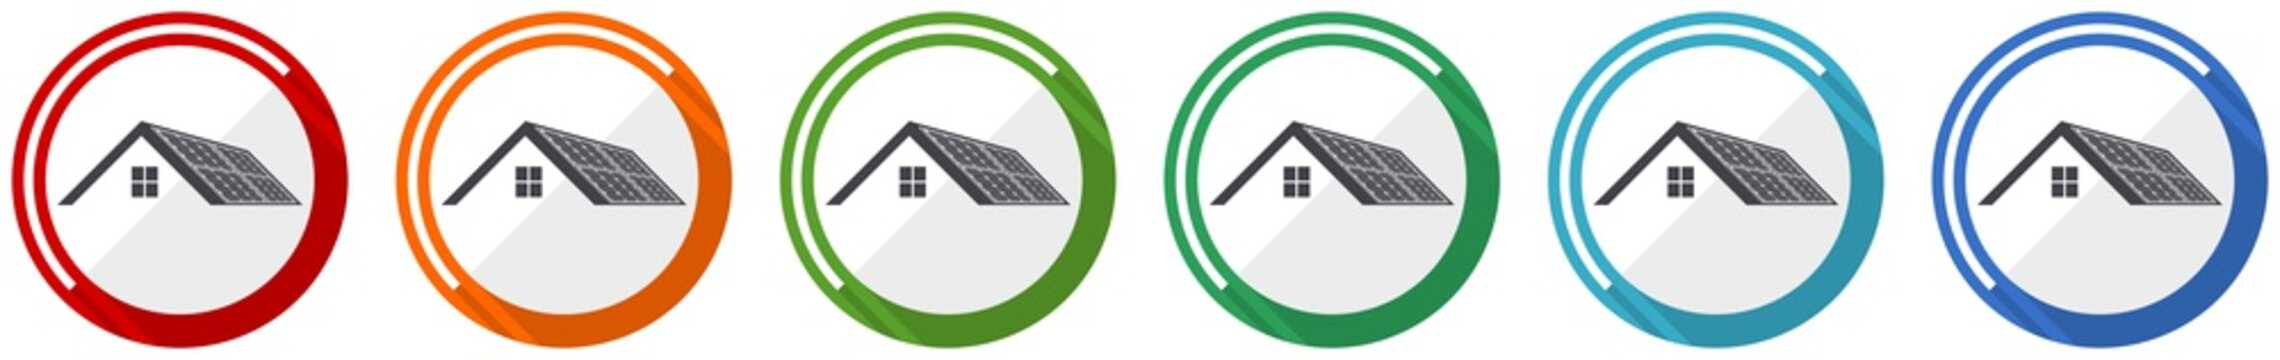 Solar panels on roof of a house, clean energy, power icon set, flat design vector illustration in 6 colors options for webdesign and mobile applications